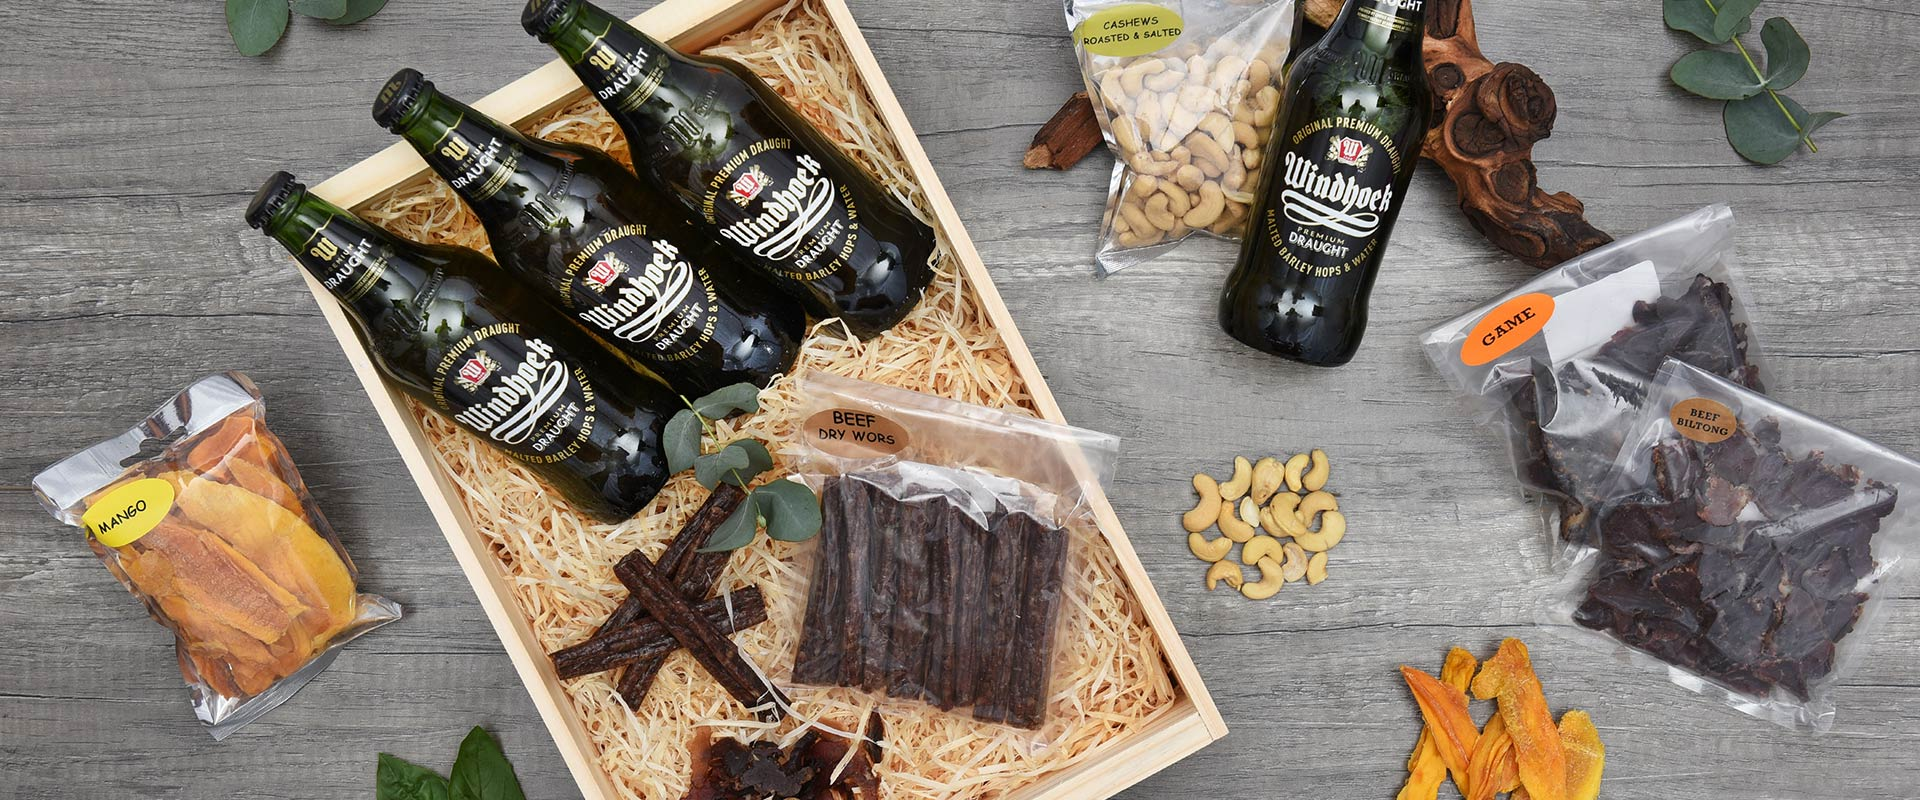 Windhoek Draught Beer Crate With Snacks | Hamper World